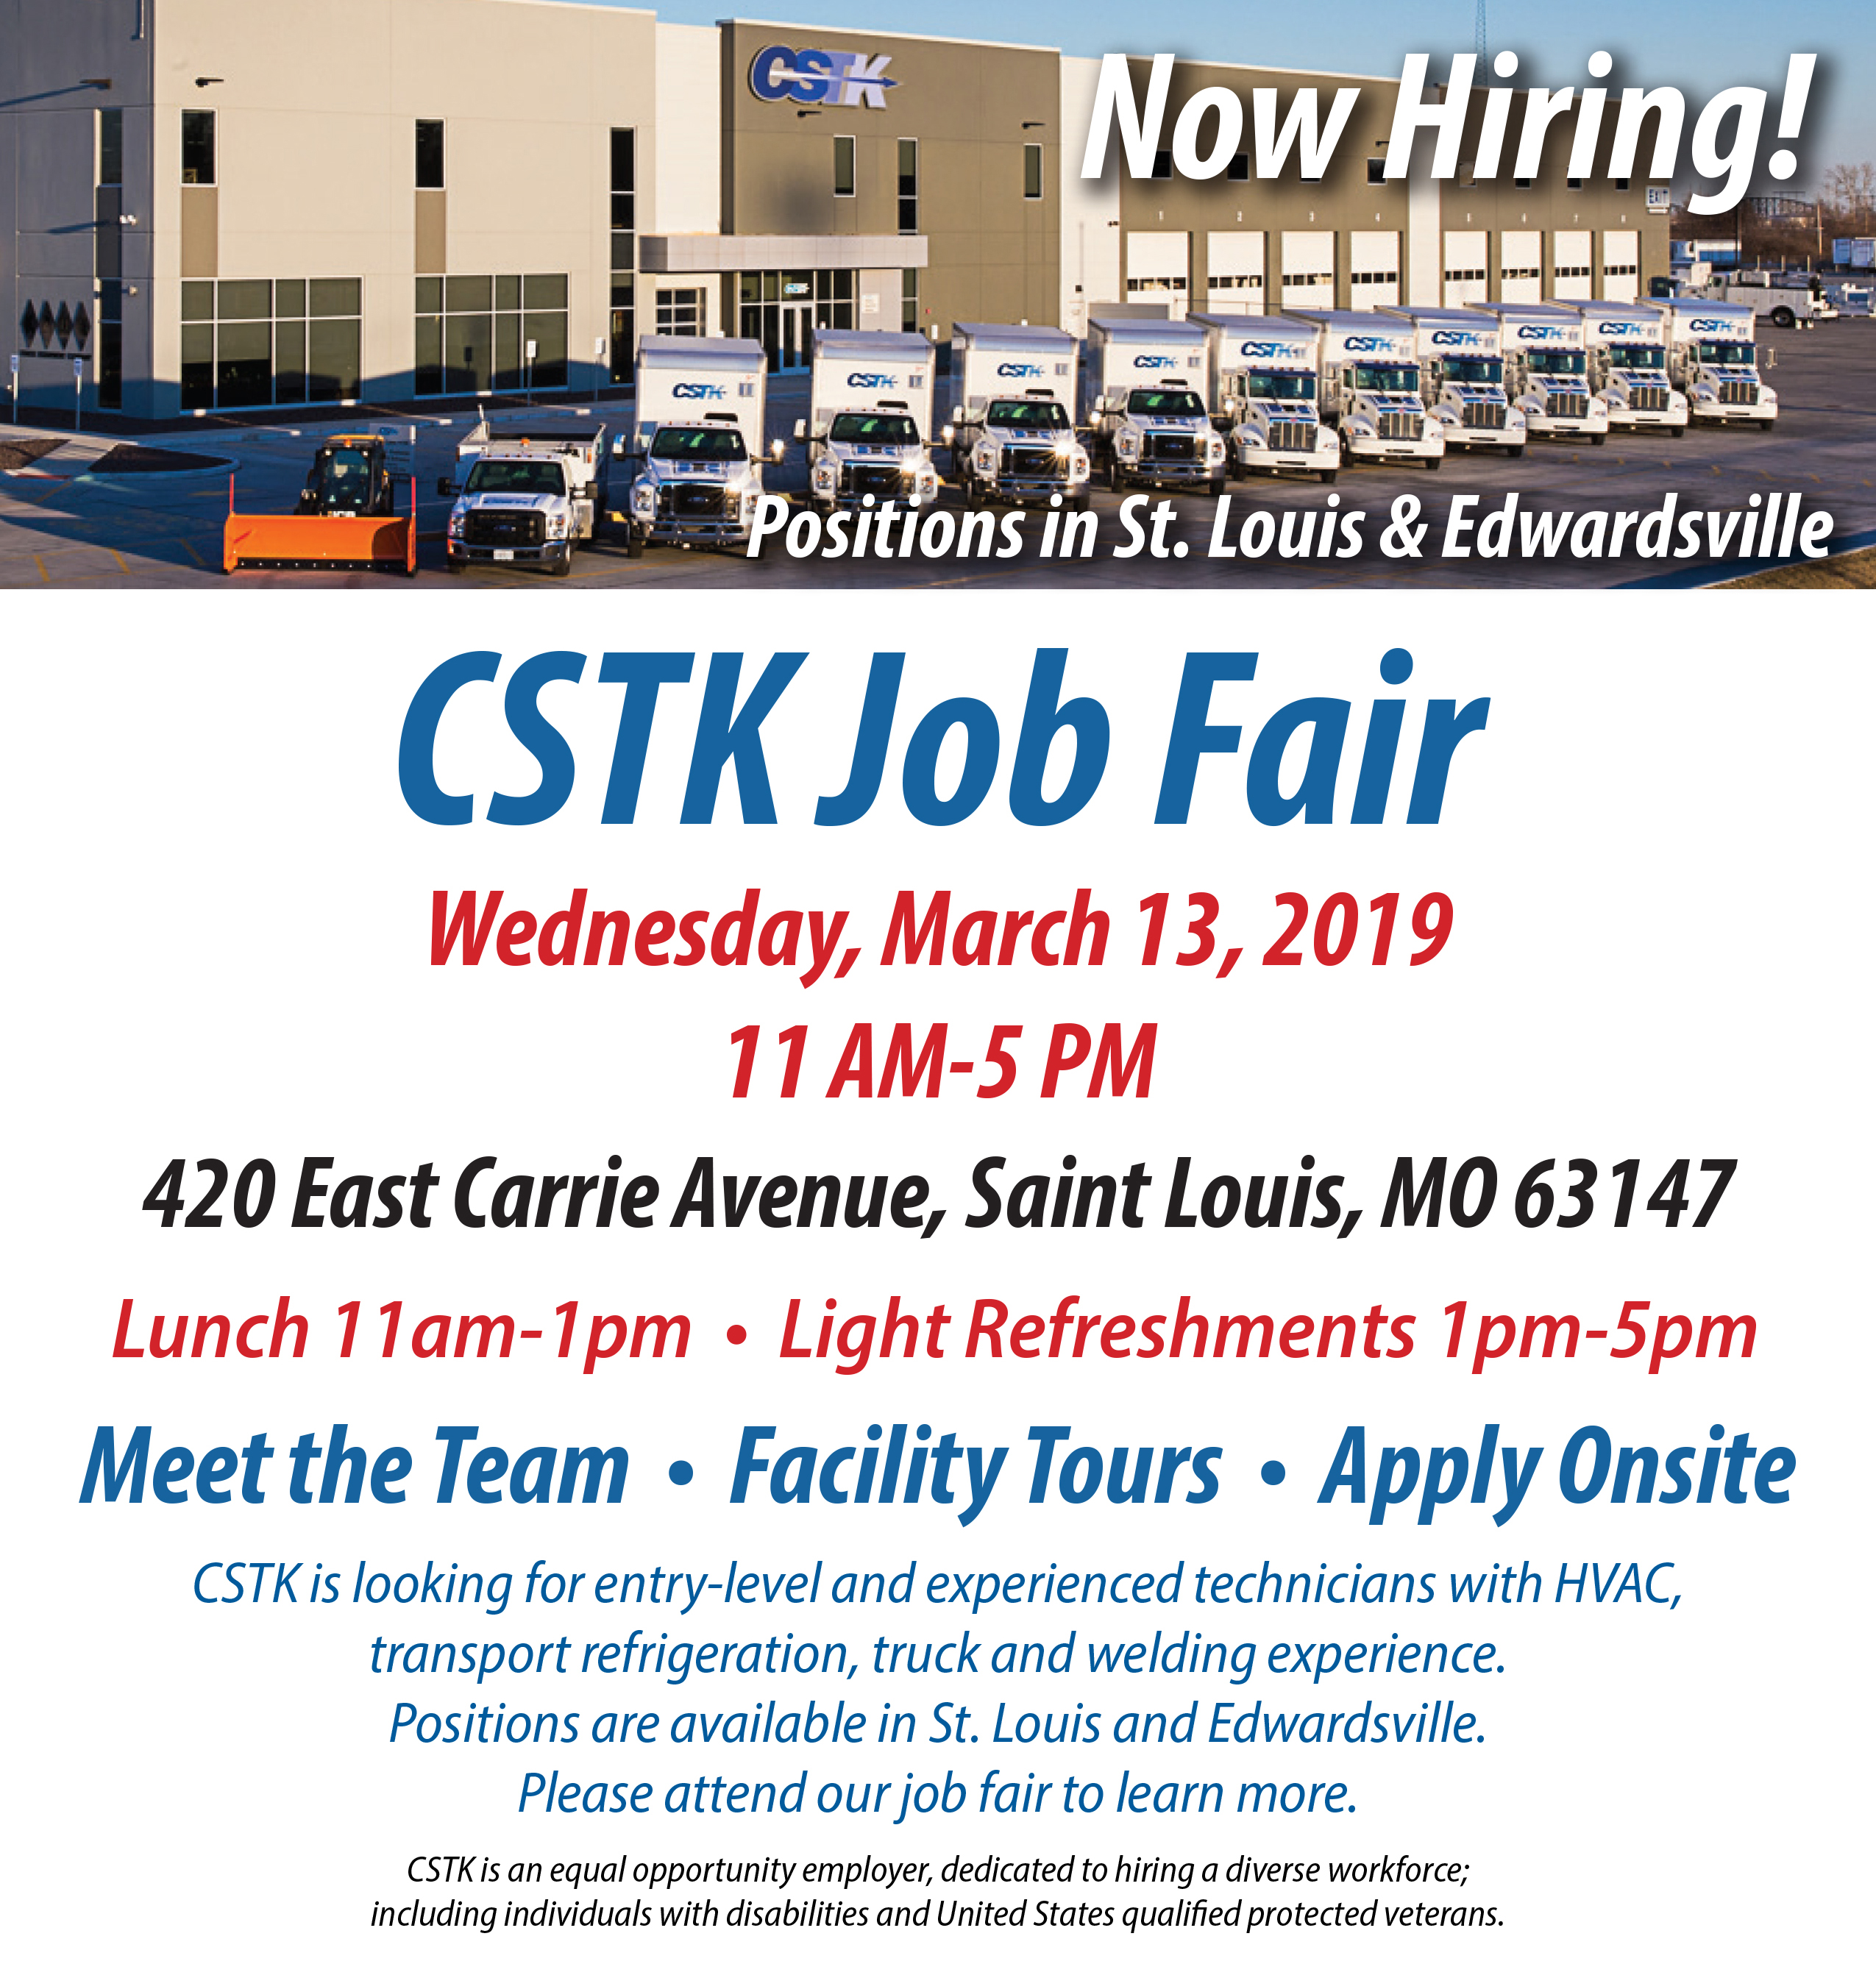 031319-STL-Job-Fair-Web